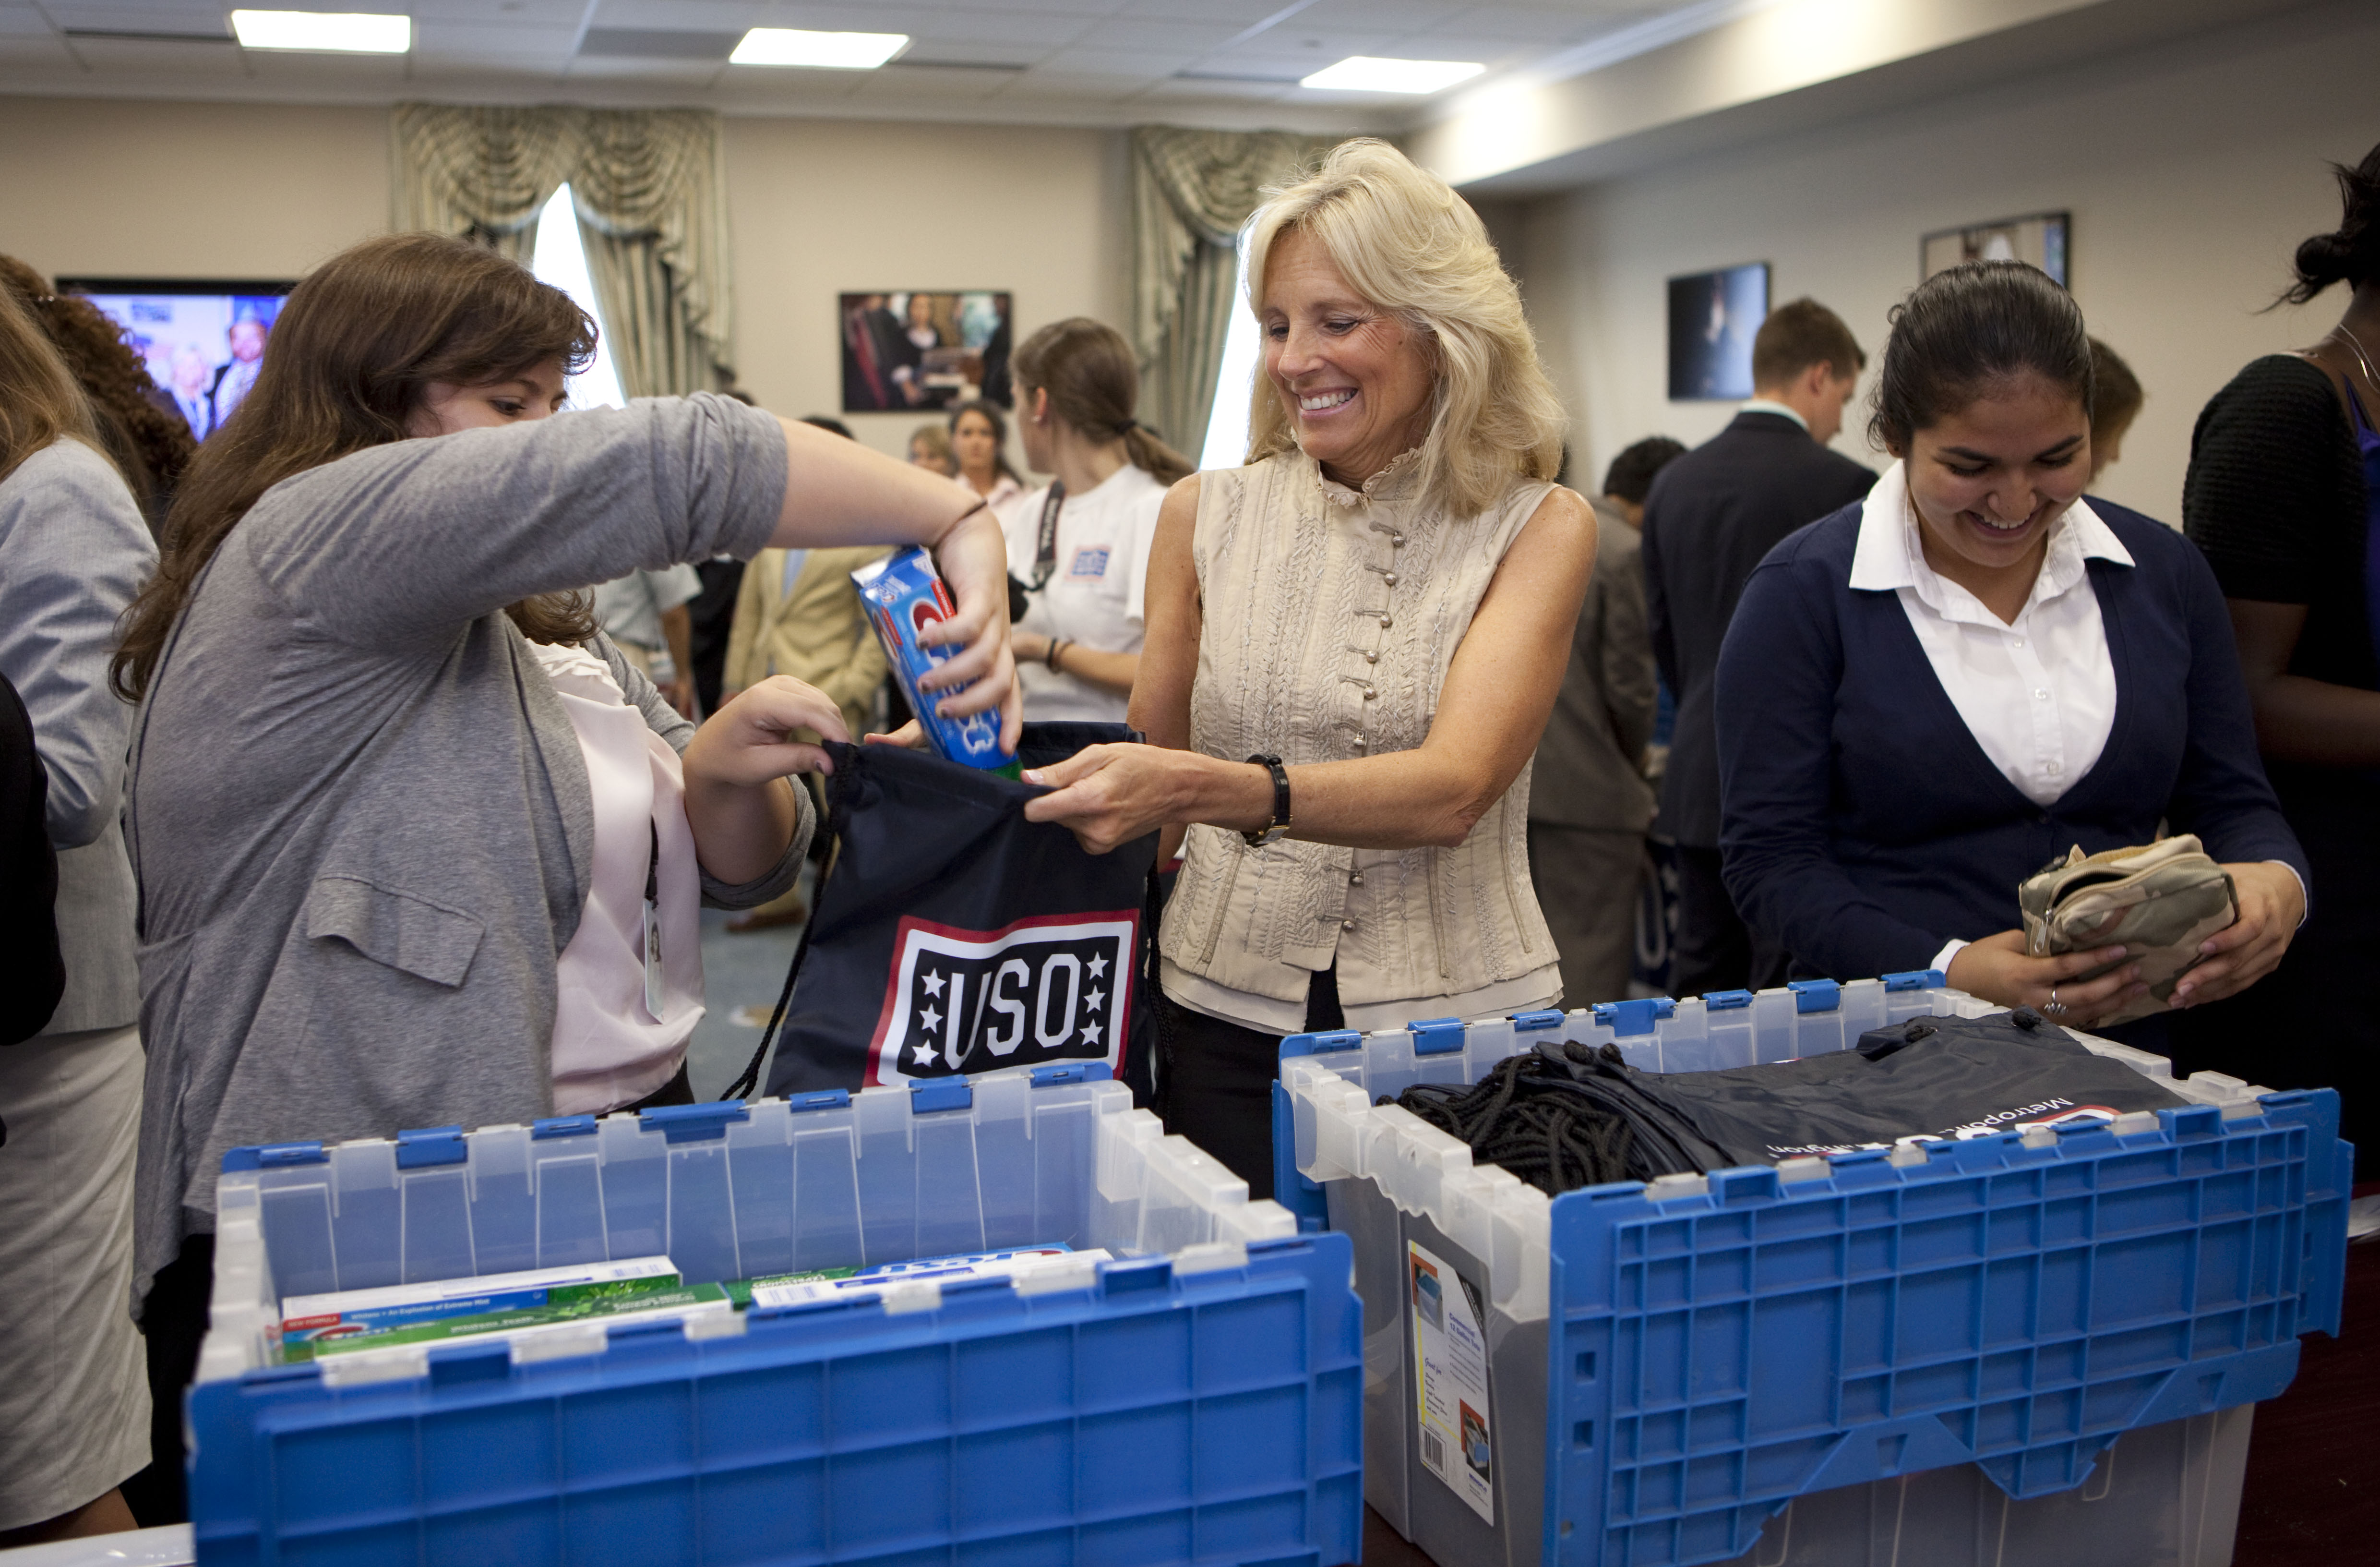 Dr. Biden assembles care packages with White House interns